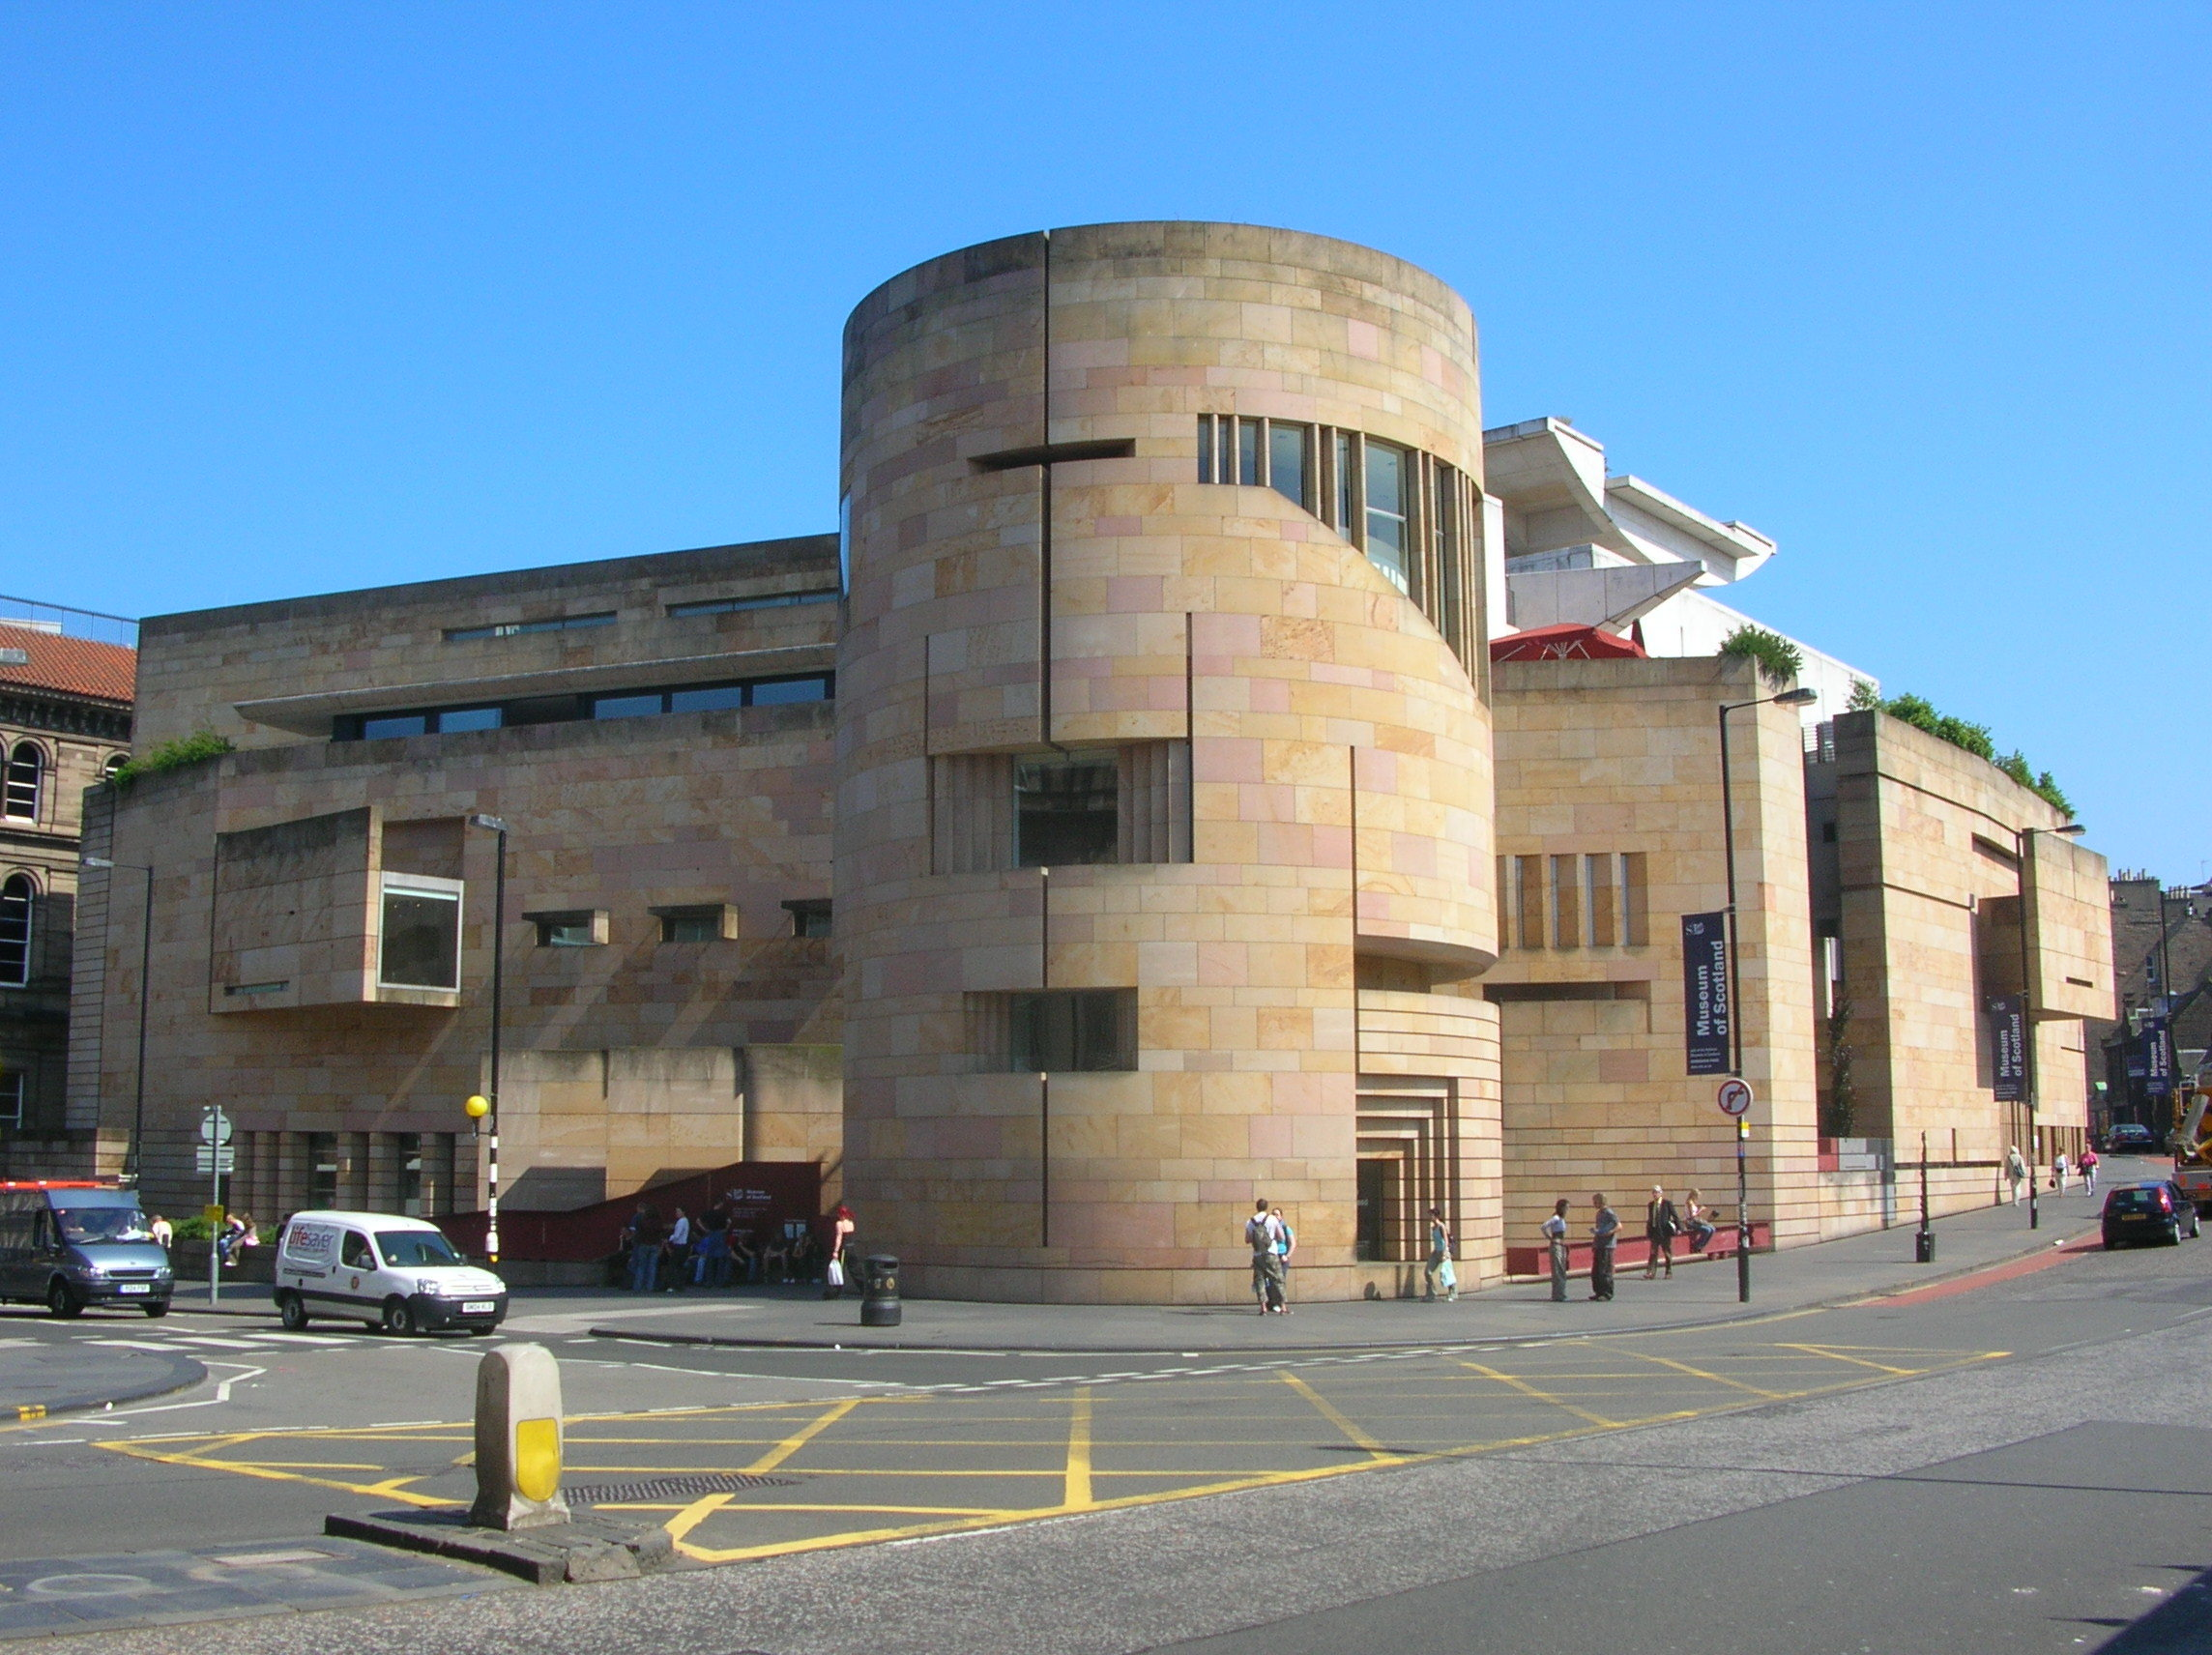 The best free things to do in Edinburgh